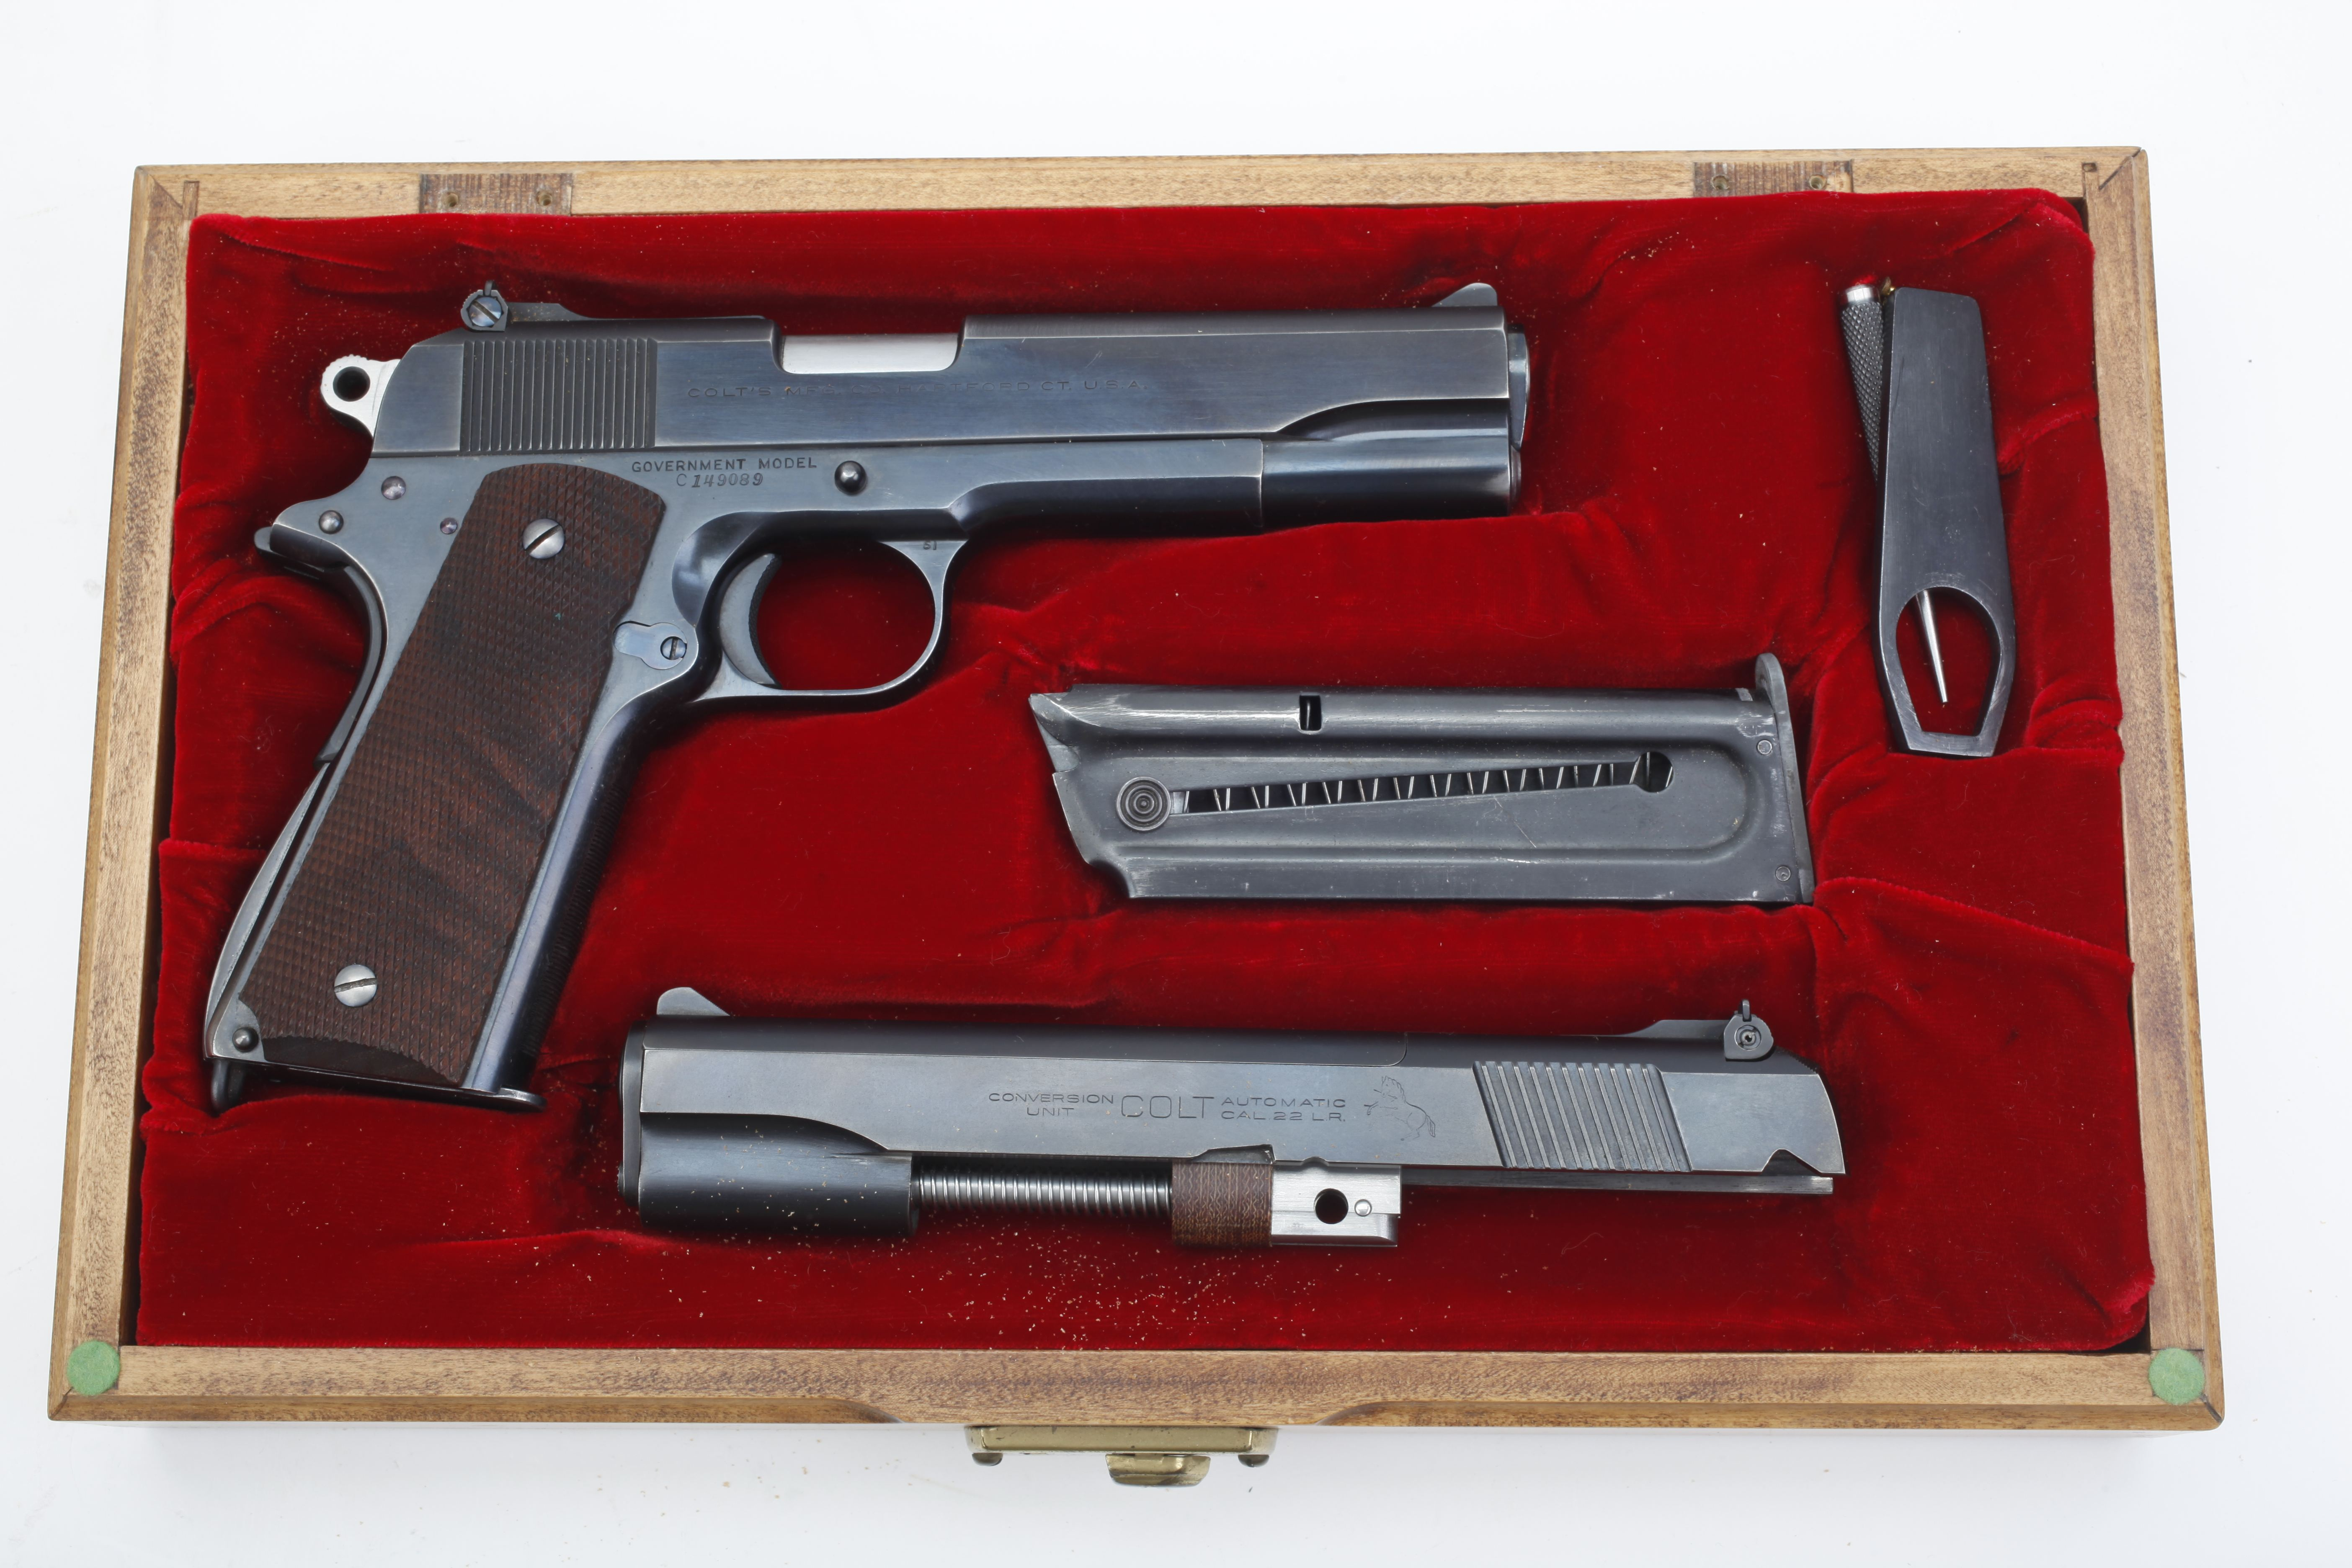 Colt Government Model Pistol - .45 ACP cal.